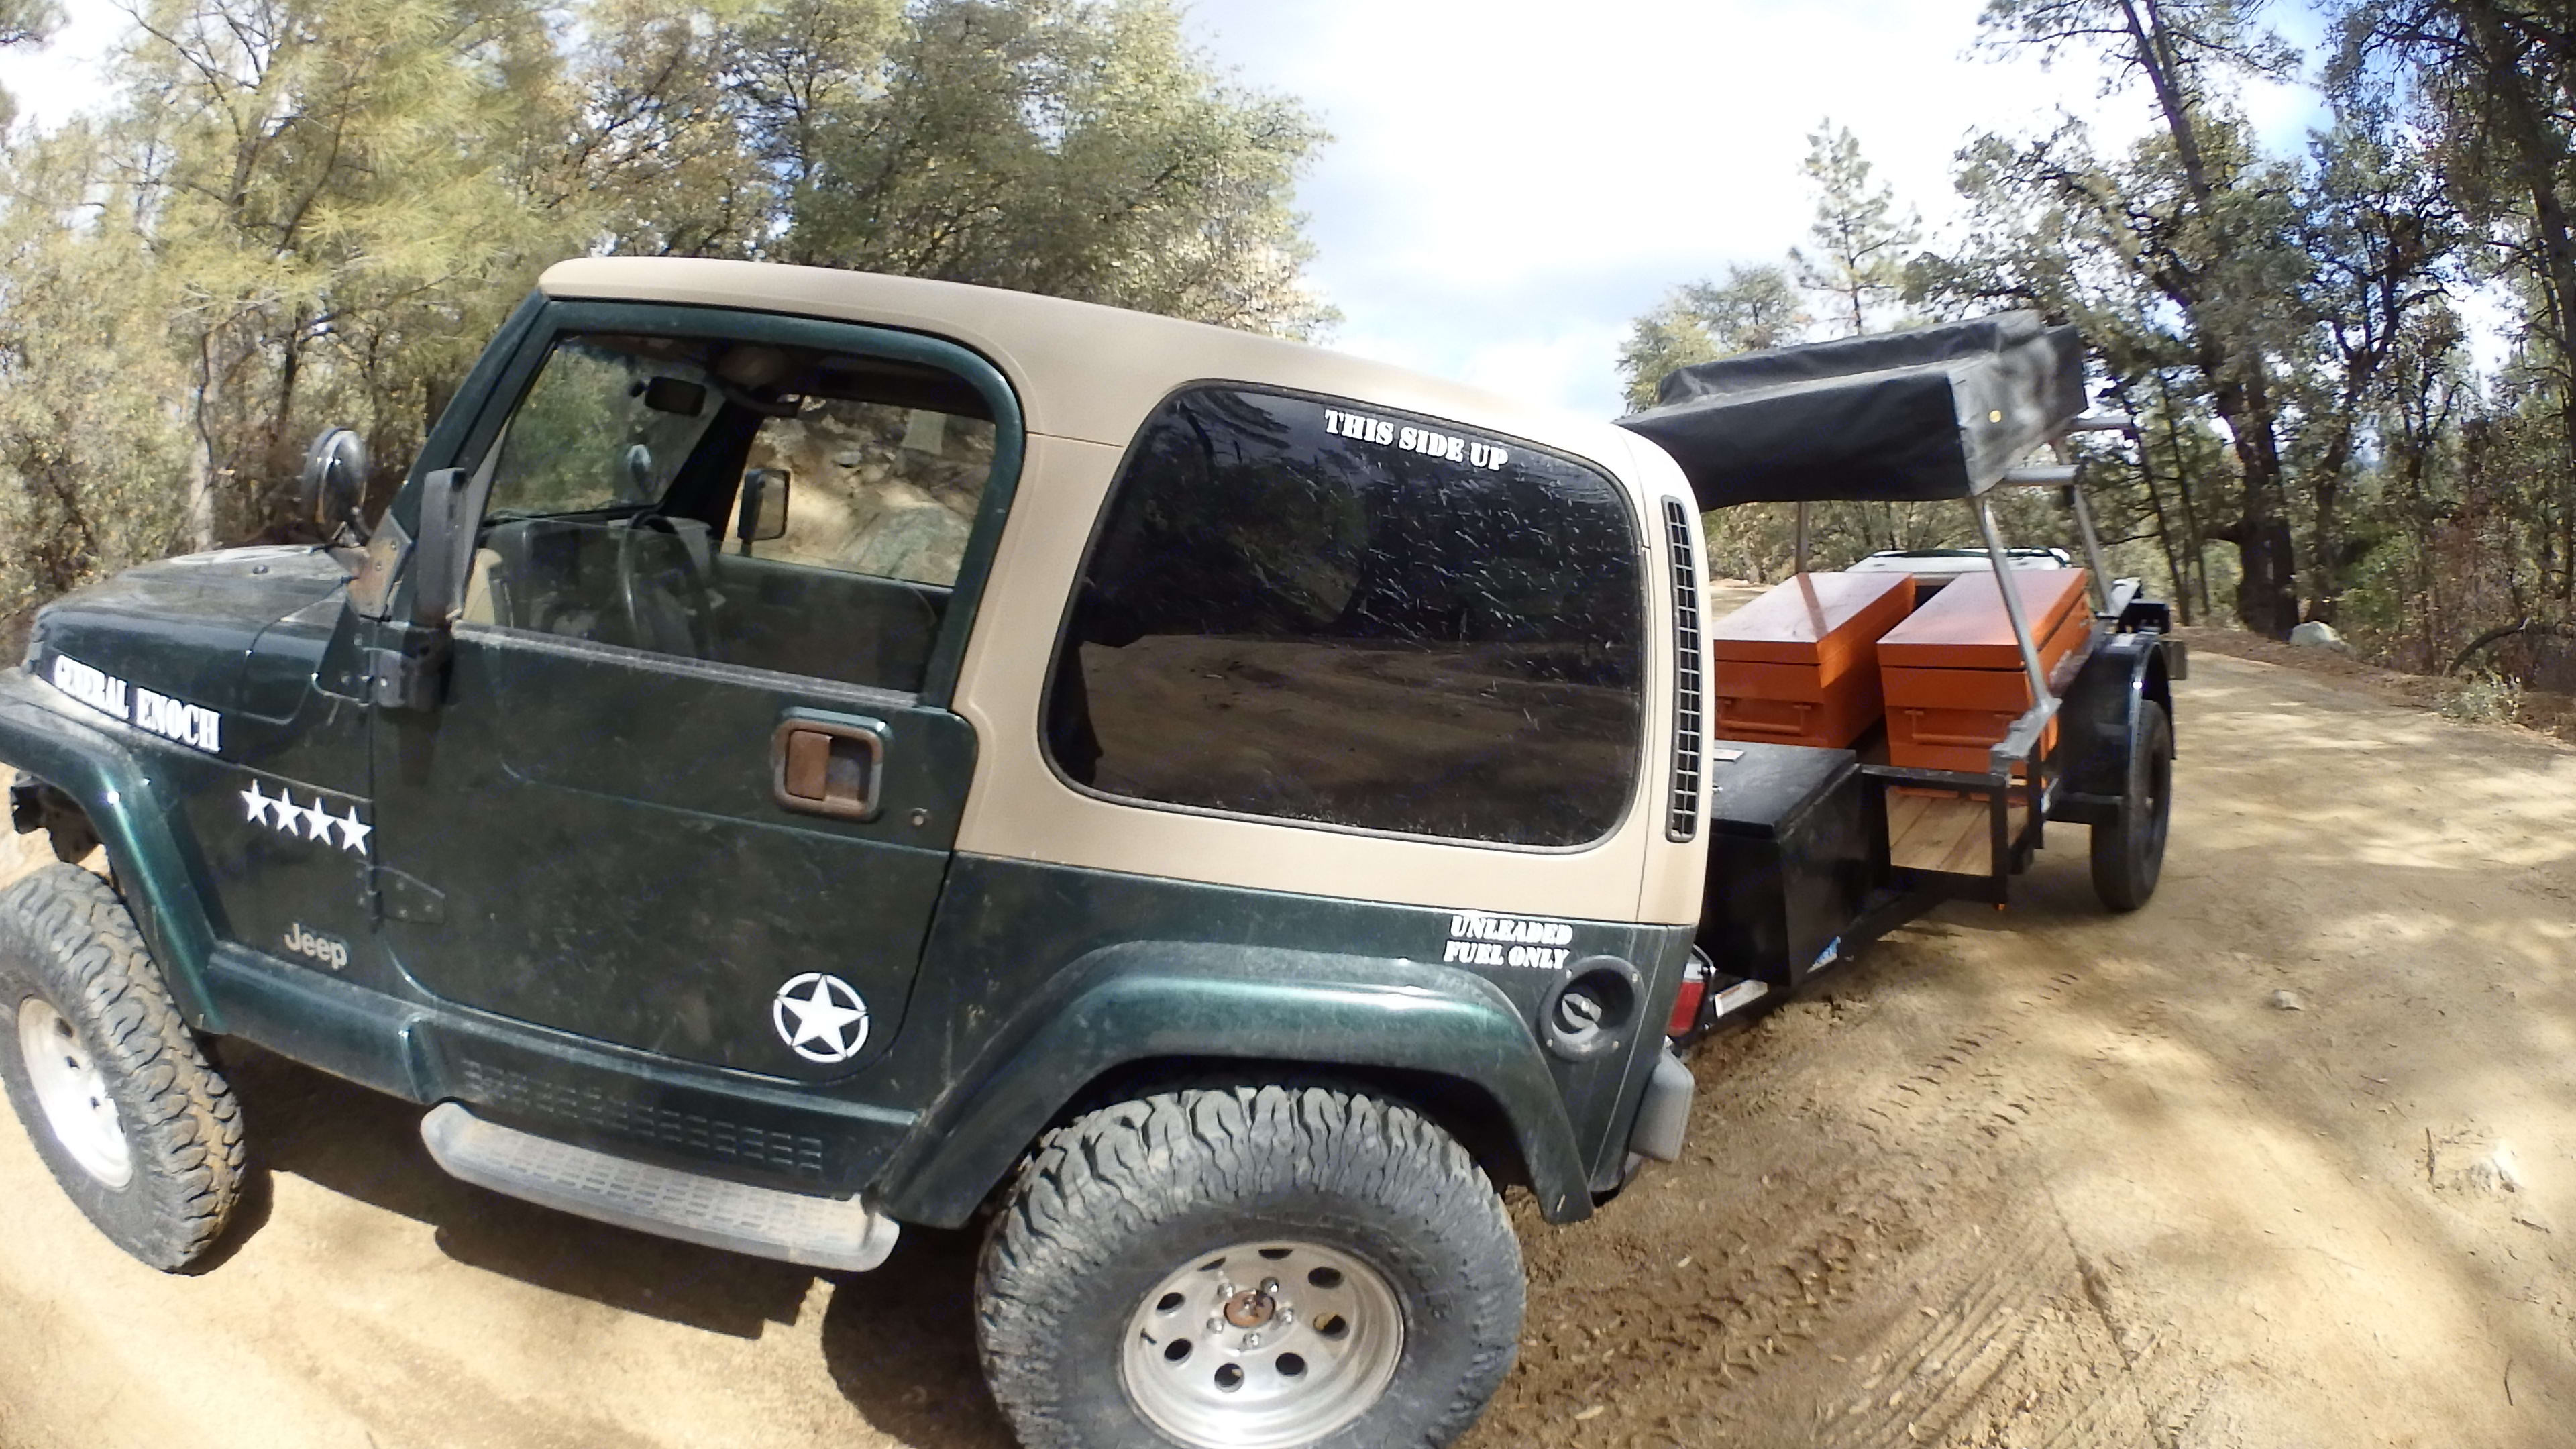 Easy to maneuver and park the trailer any way you want it with this JEEP!. Jeep Wrangler 2000